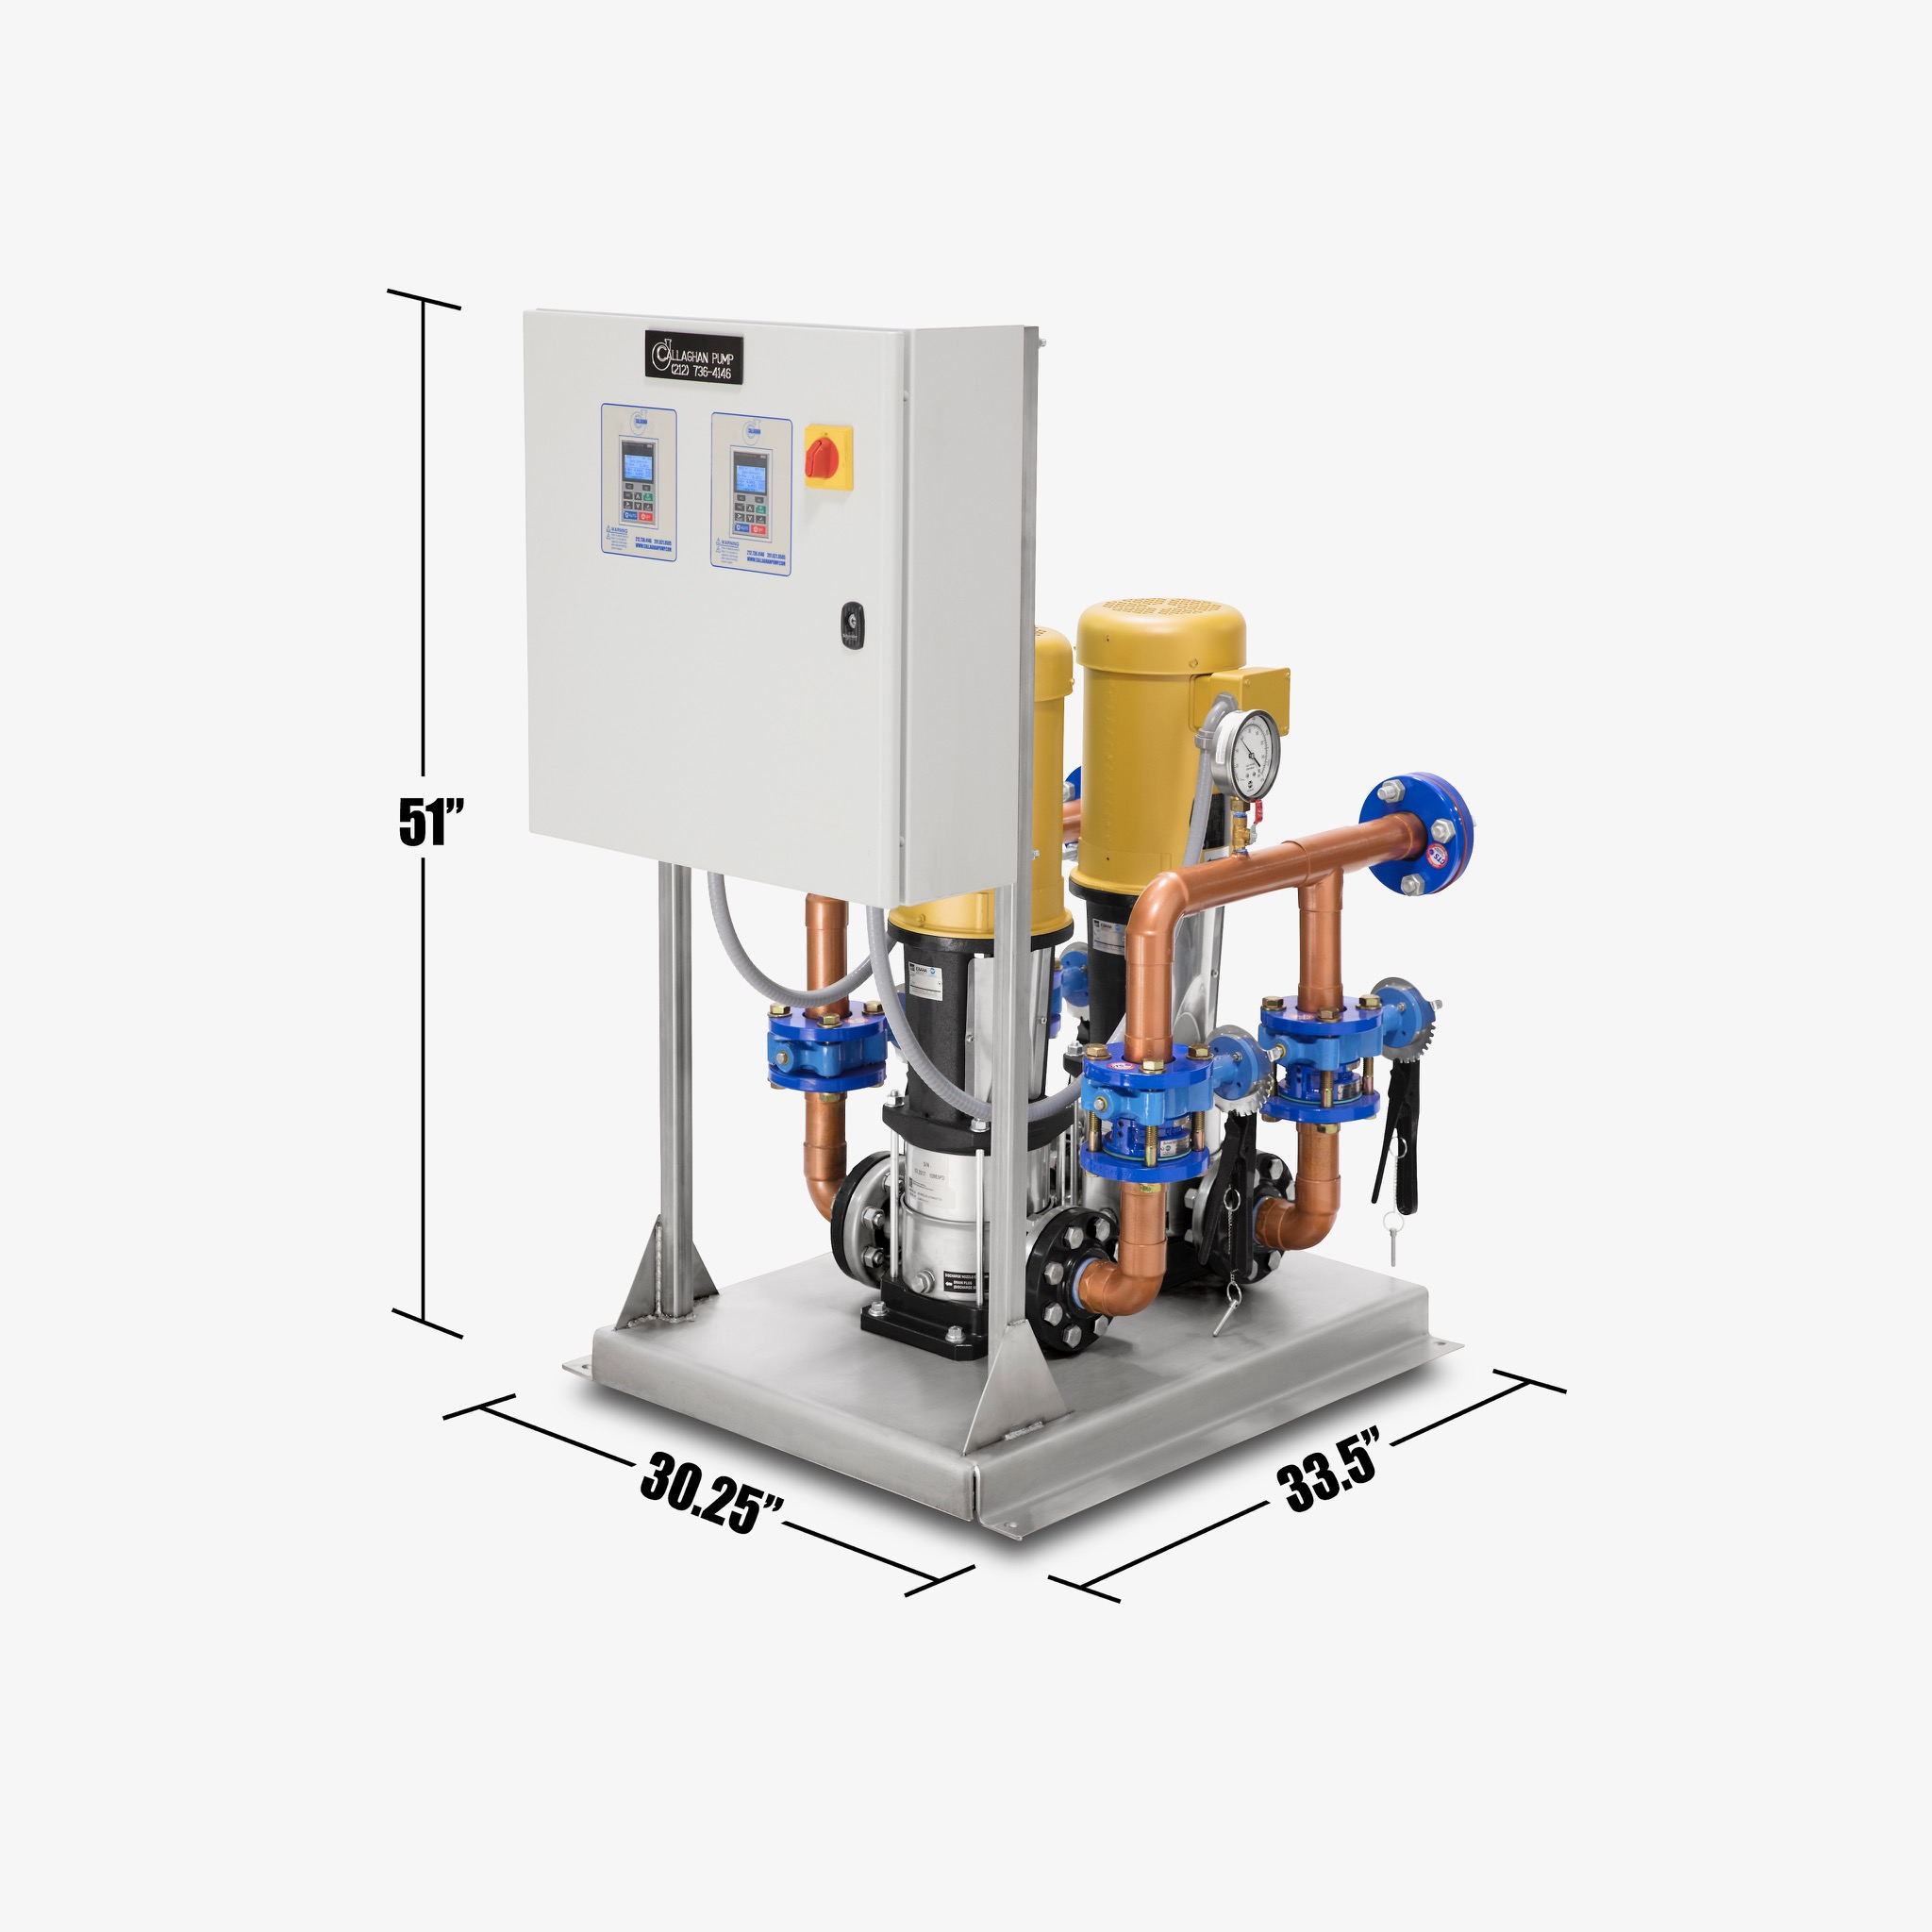 Domestic Water Booster System